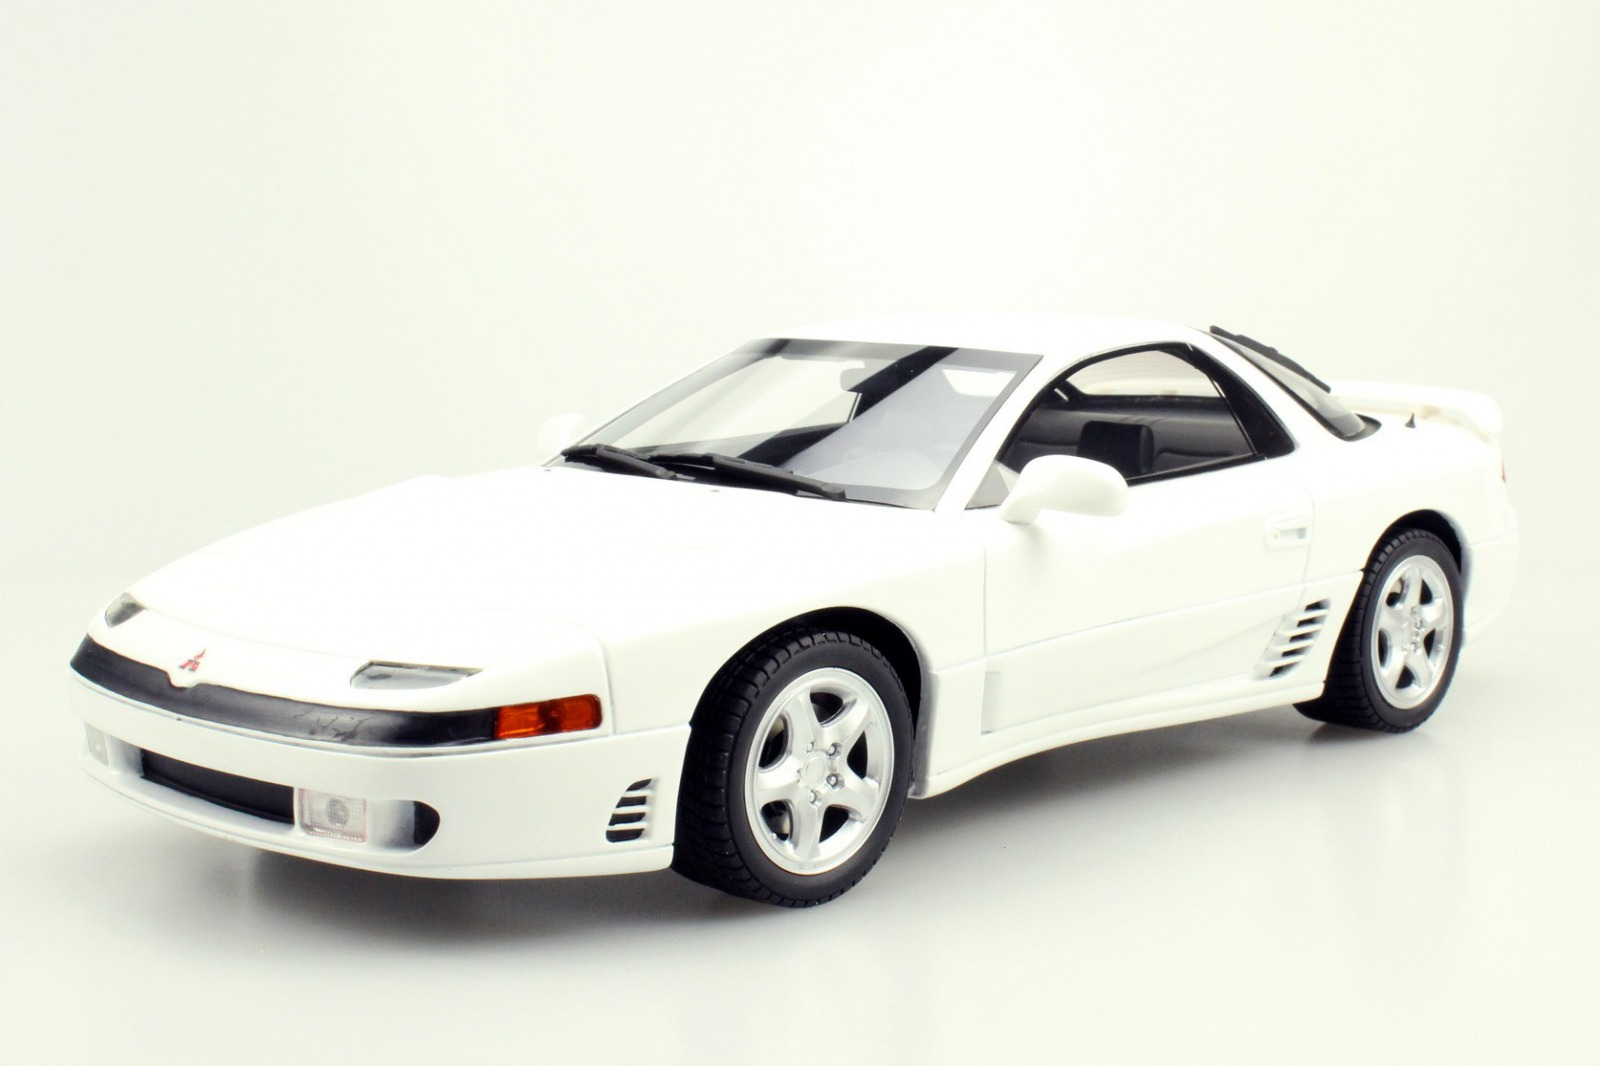 LS Collectibles 1:18 1992年モデル 三菱 3000 GTOLS Collectibles Mitsubishi 3000 GTO 1992 1/18 by LS Collctibles JPN